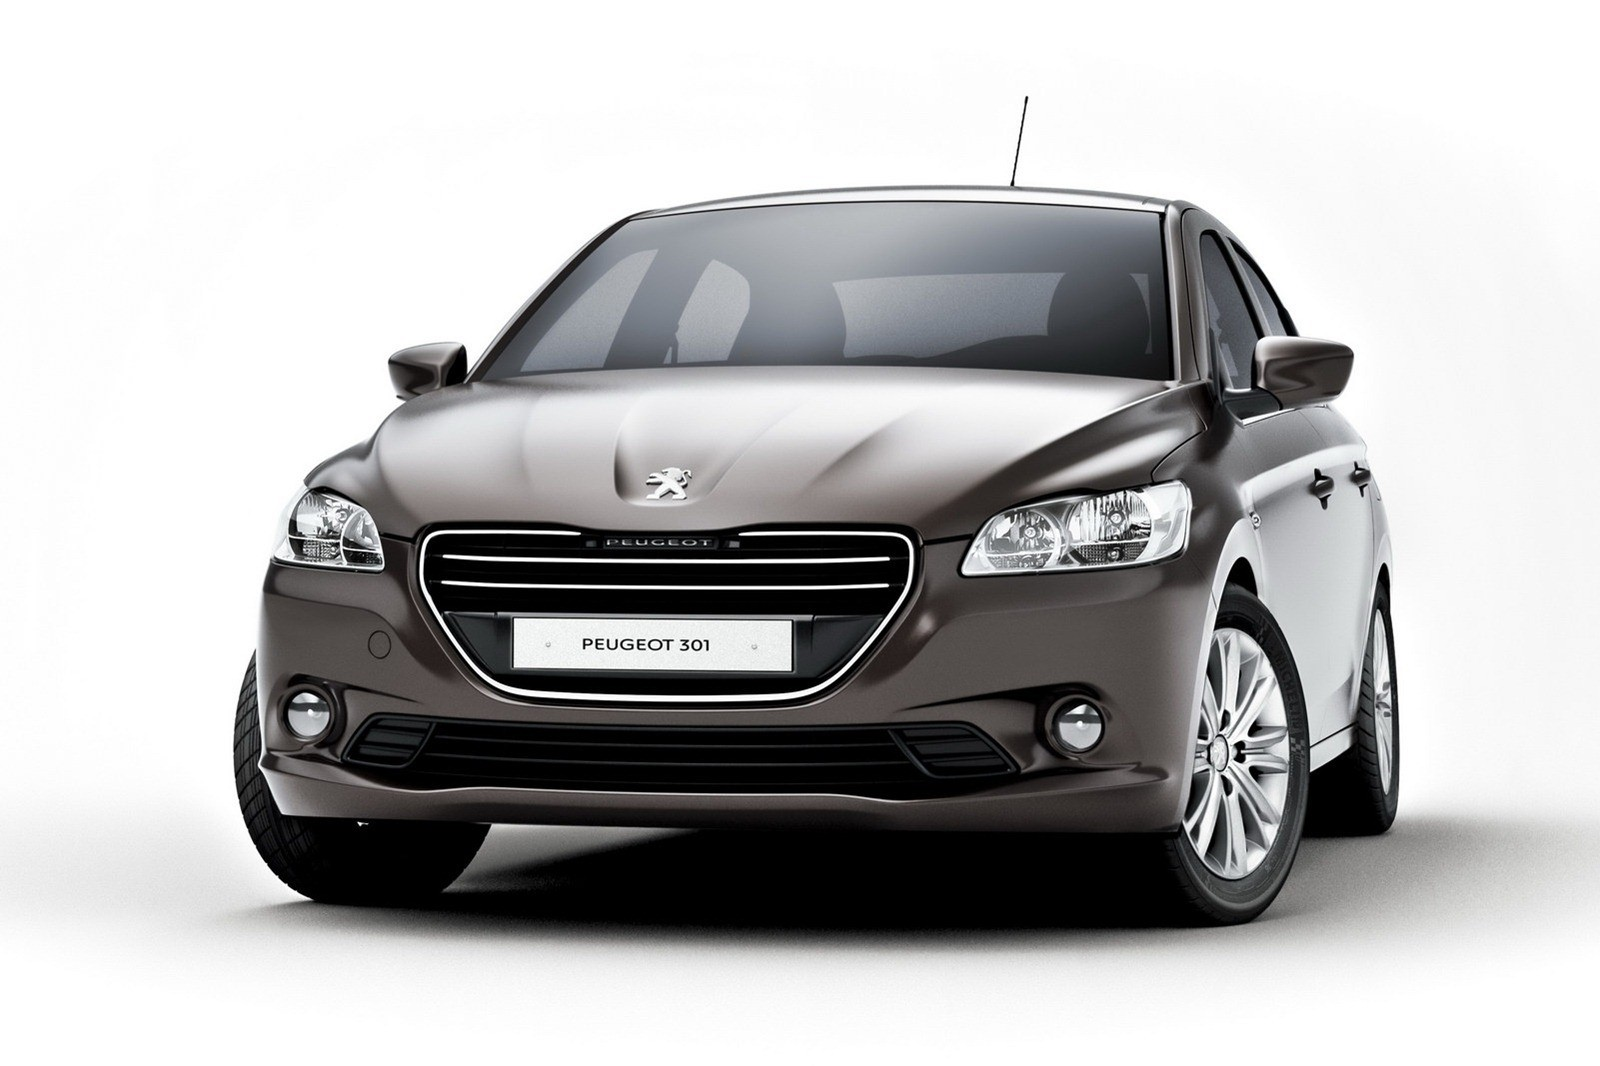 Image with 2012 Peugeot 301